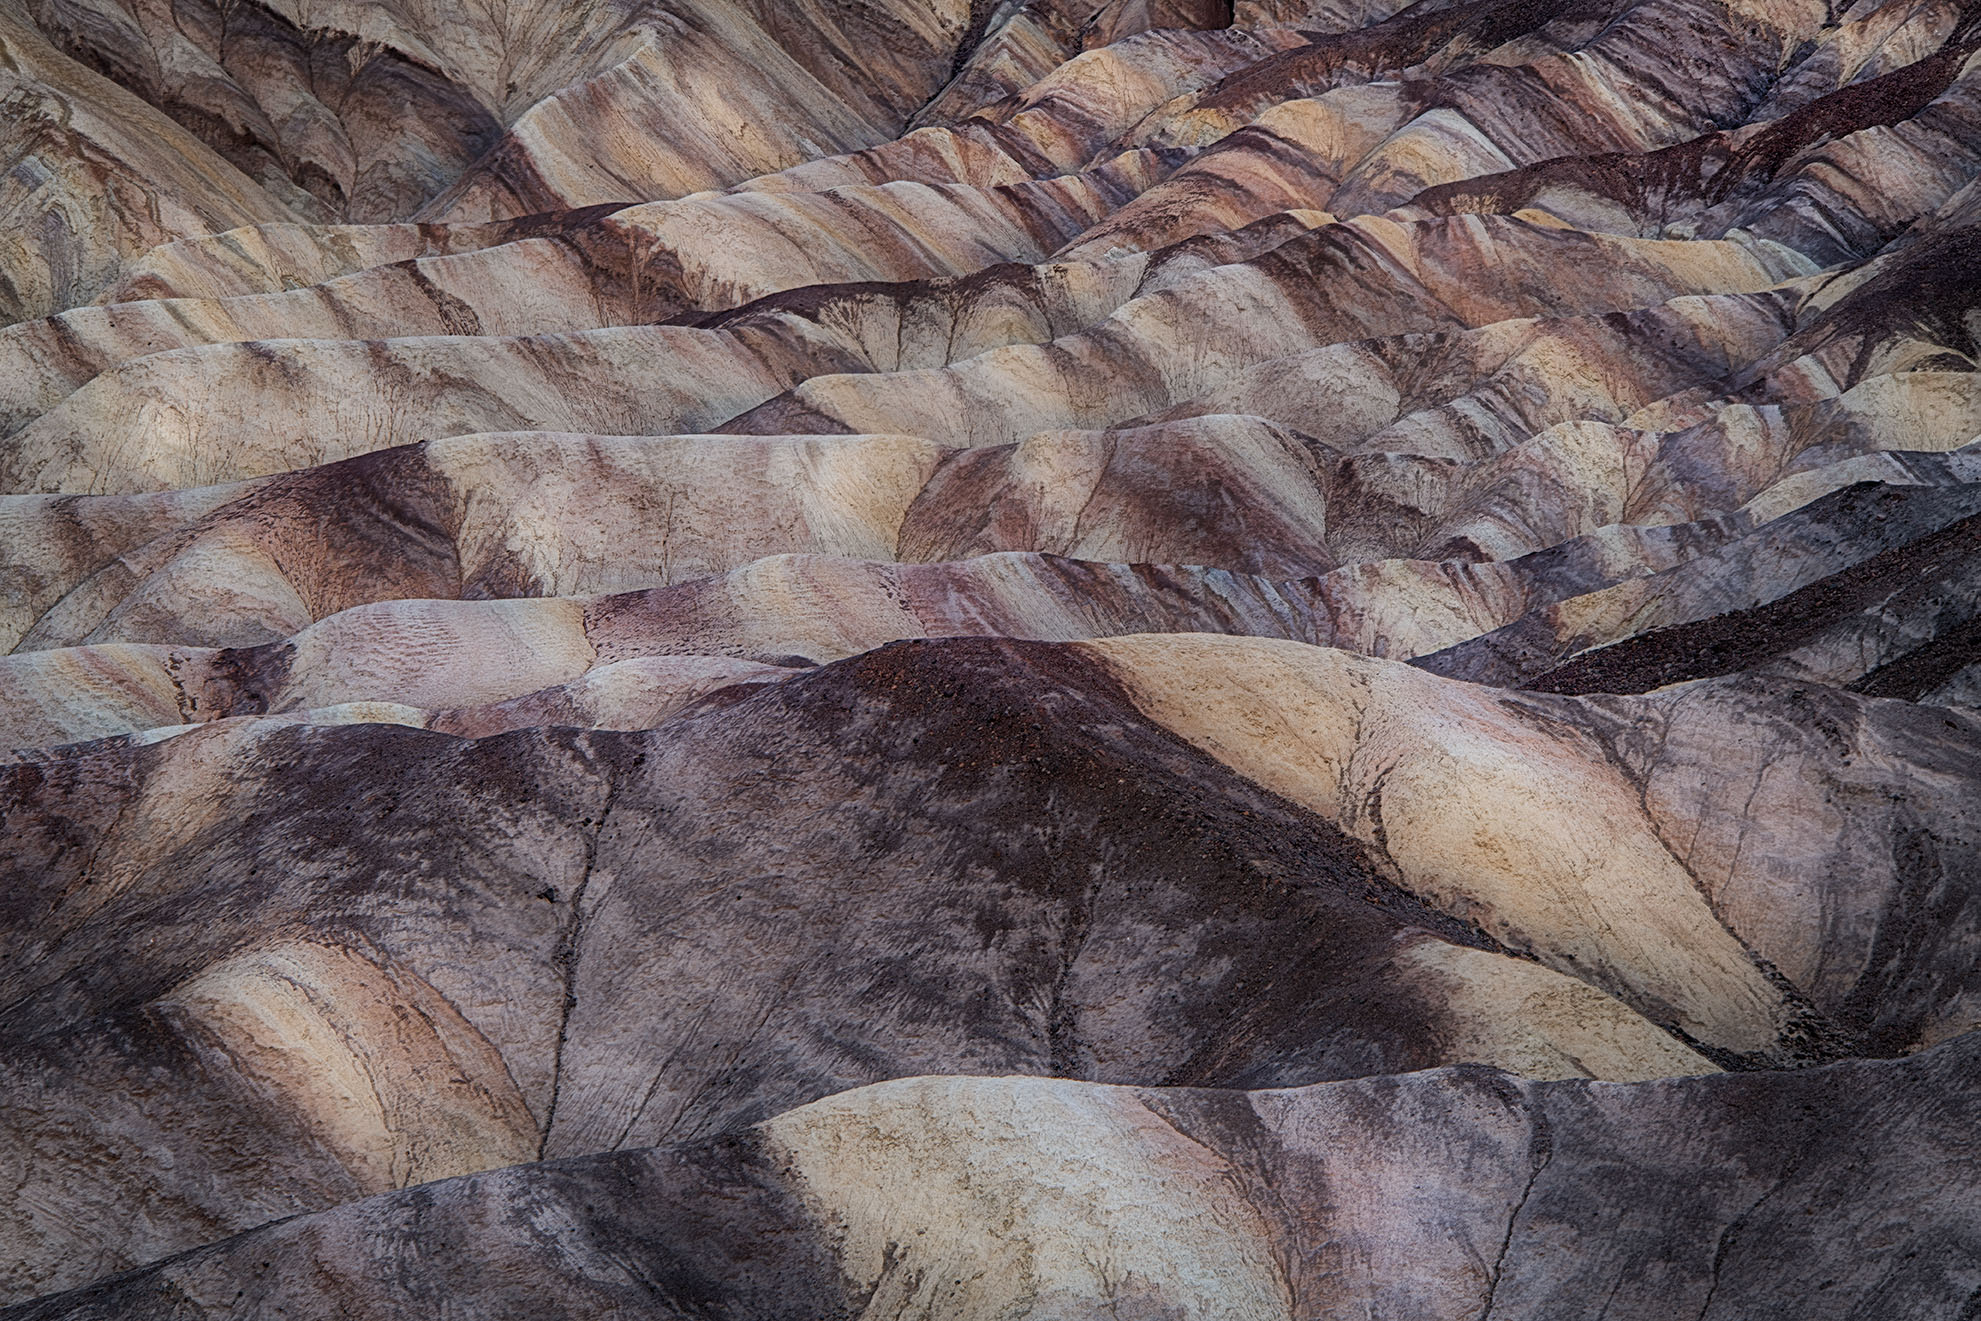 Folds in the Earth © Harold Davis